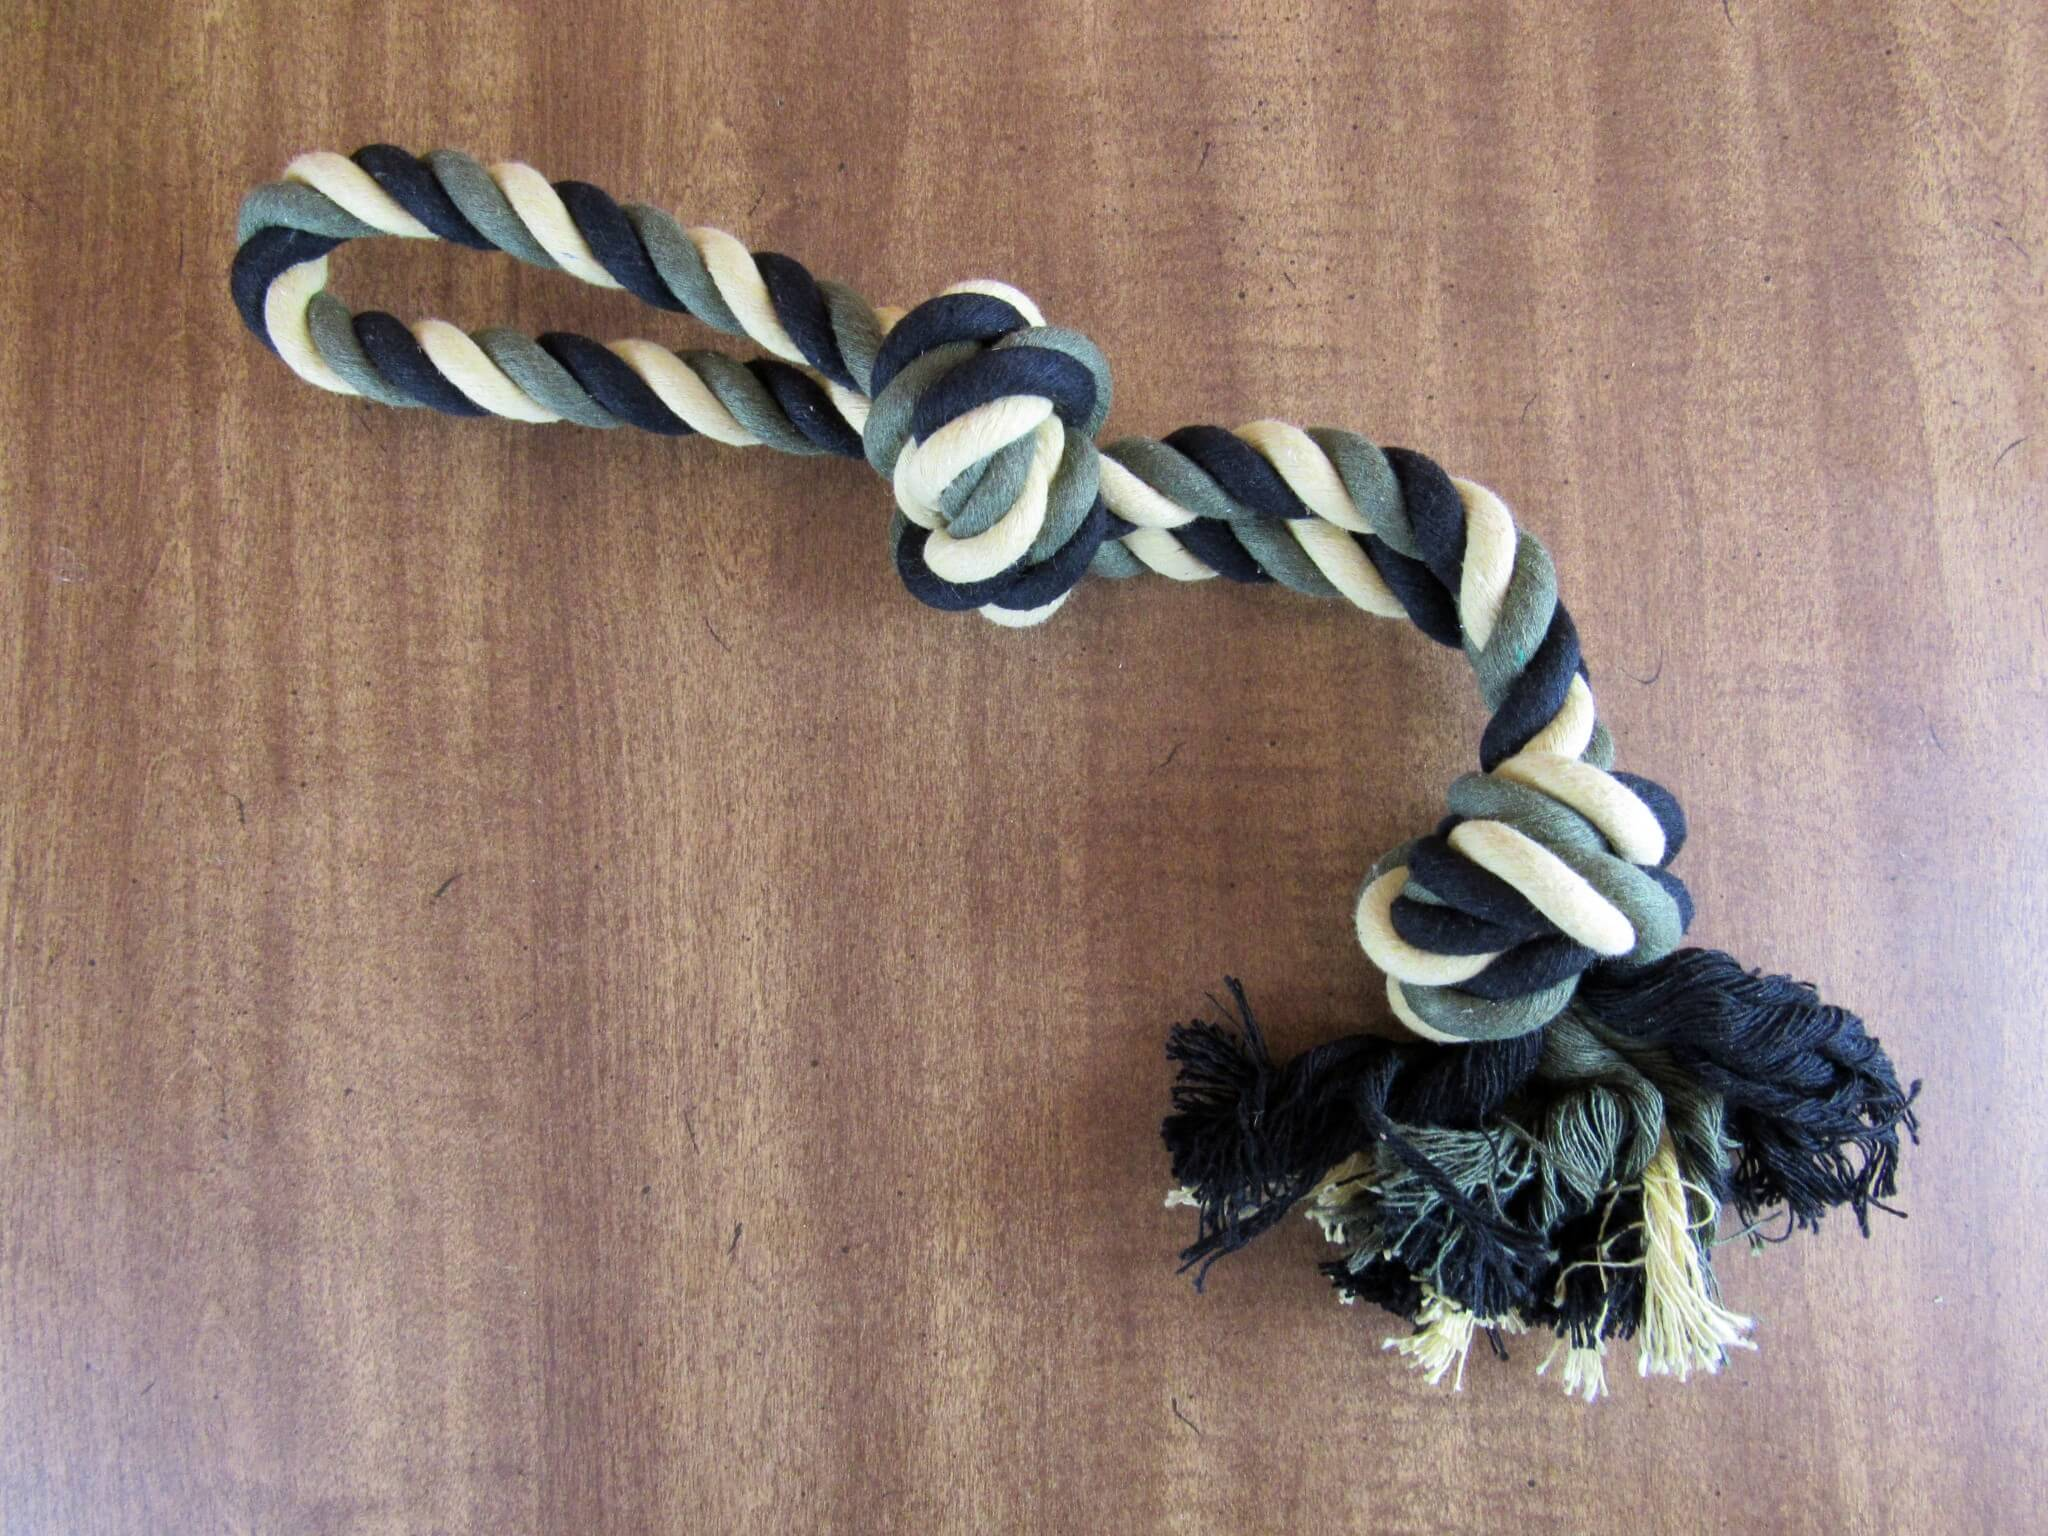 U.S. Army Knotted Rope Toy